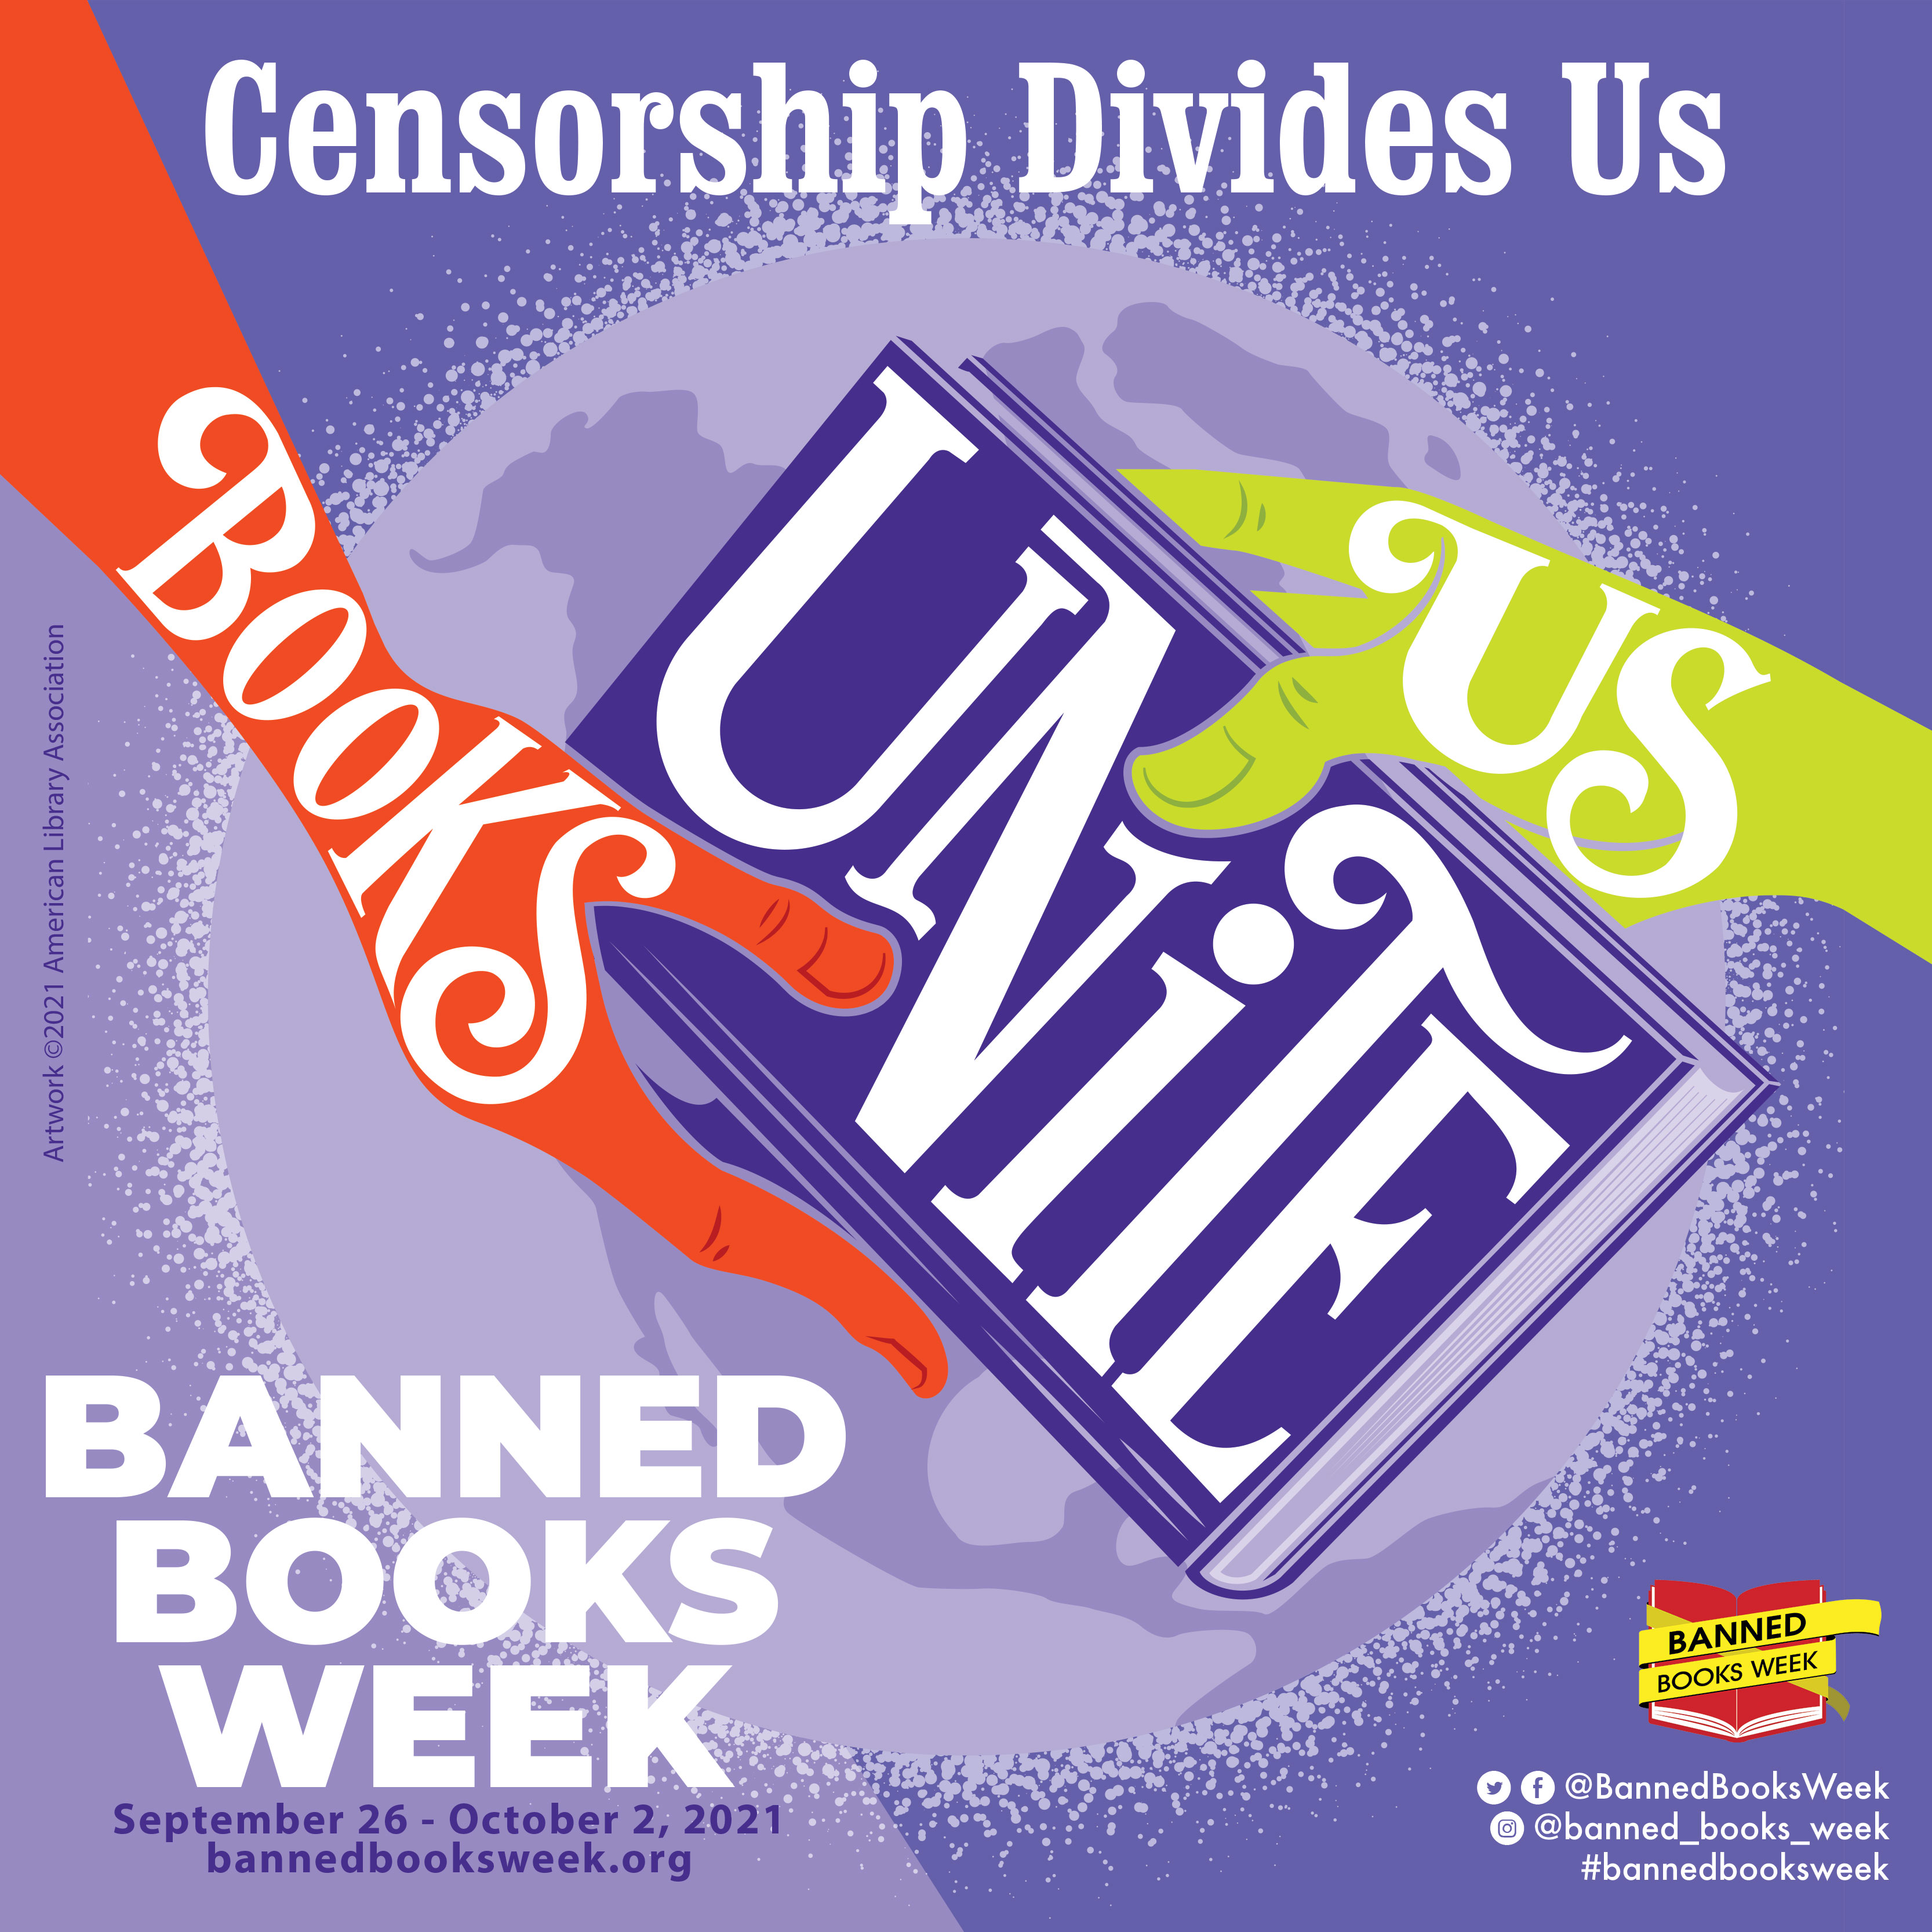 Graphic text advertising banned books week